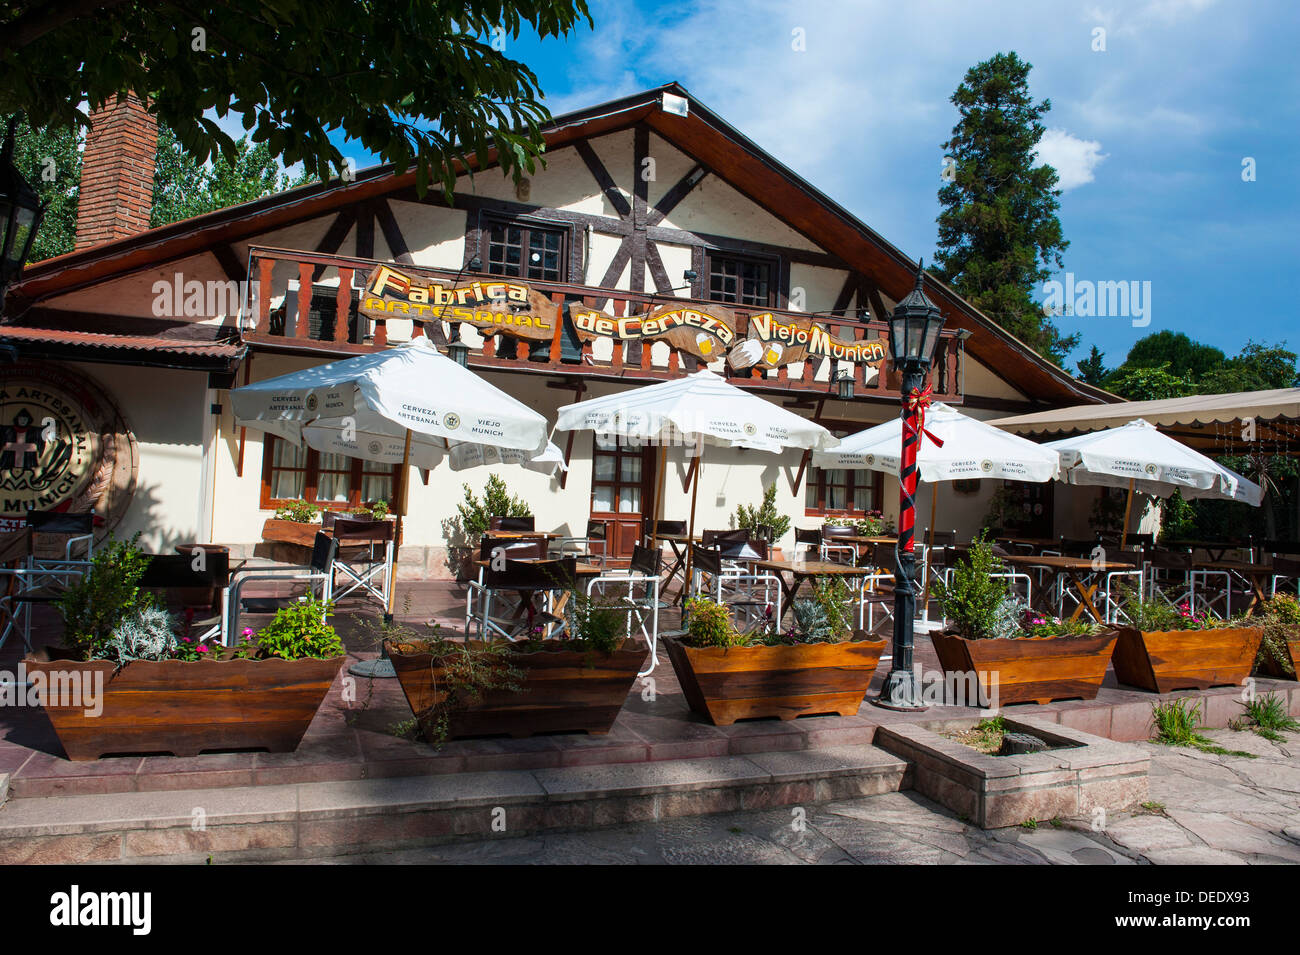 German heritage in Villa General Belgrano near Cordoba, Argentina, South America - Stock Image